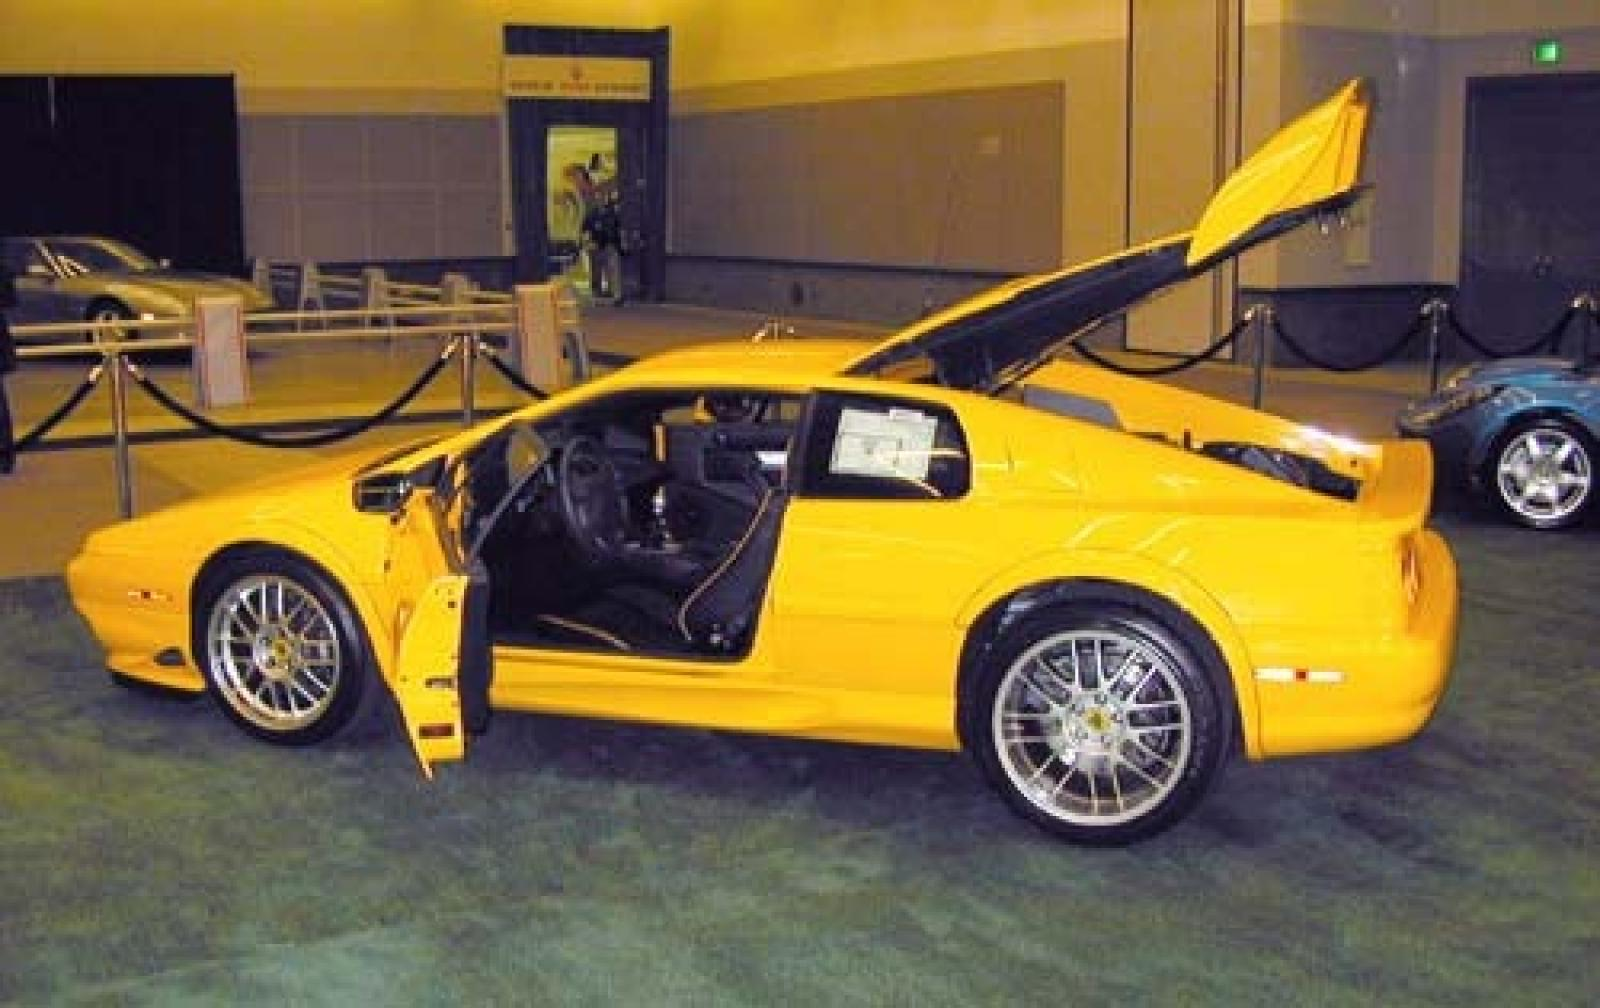 2004 lotus esprit information and photos zombiedrive 800 1024 1280 1600 origin 2004 lotus esprit vanachro Gallery